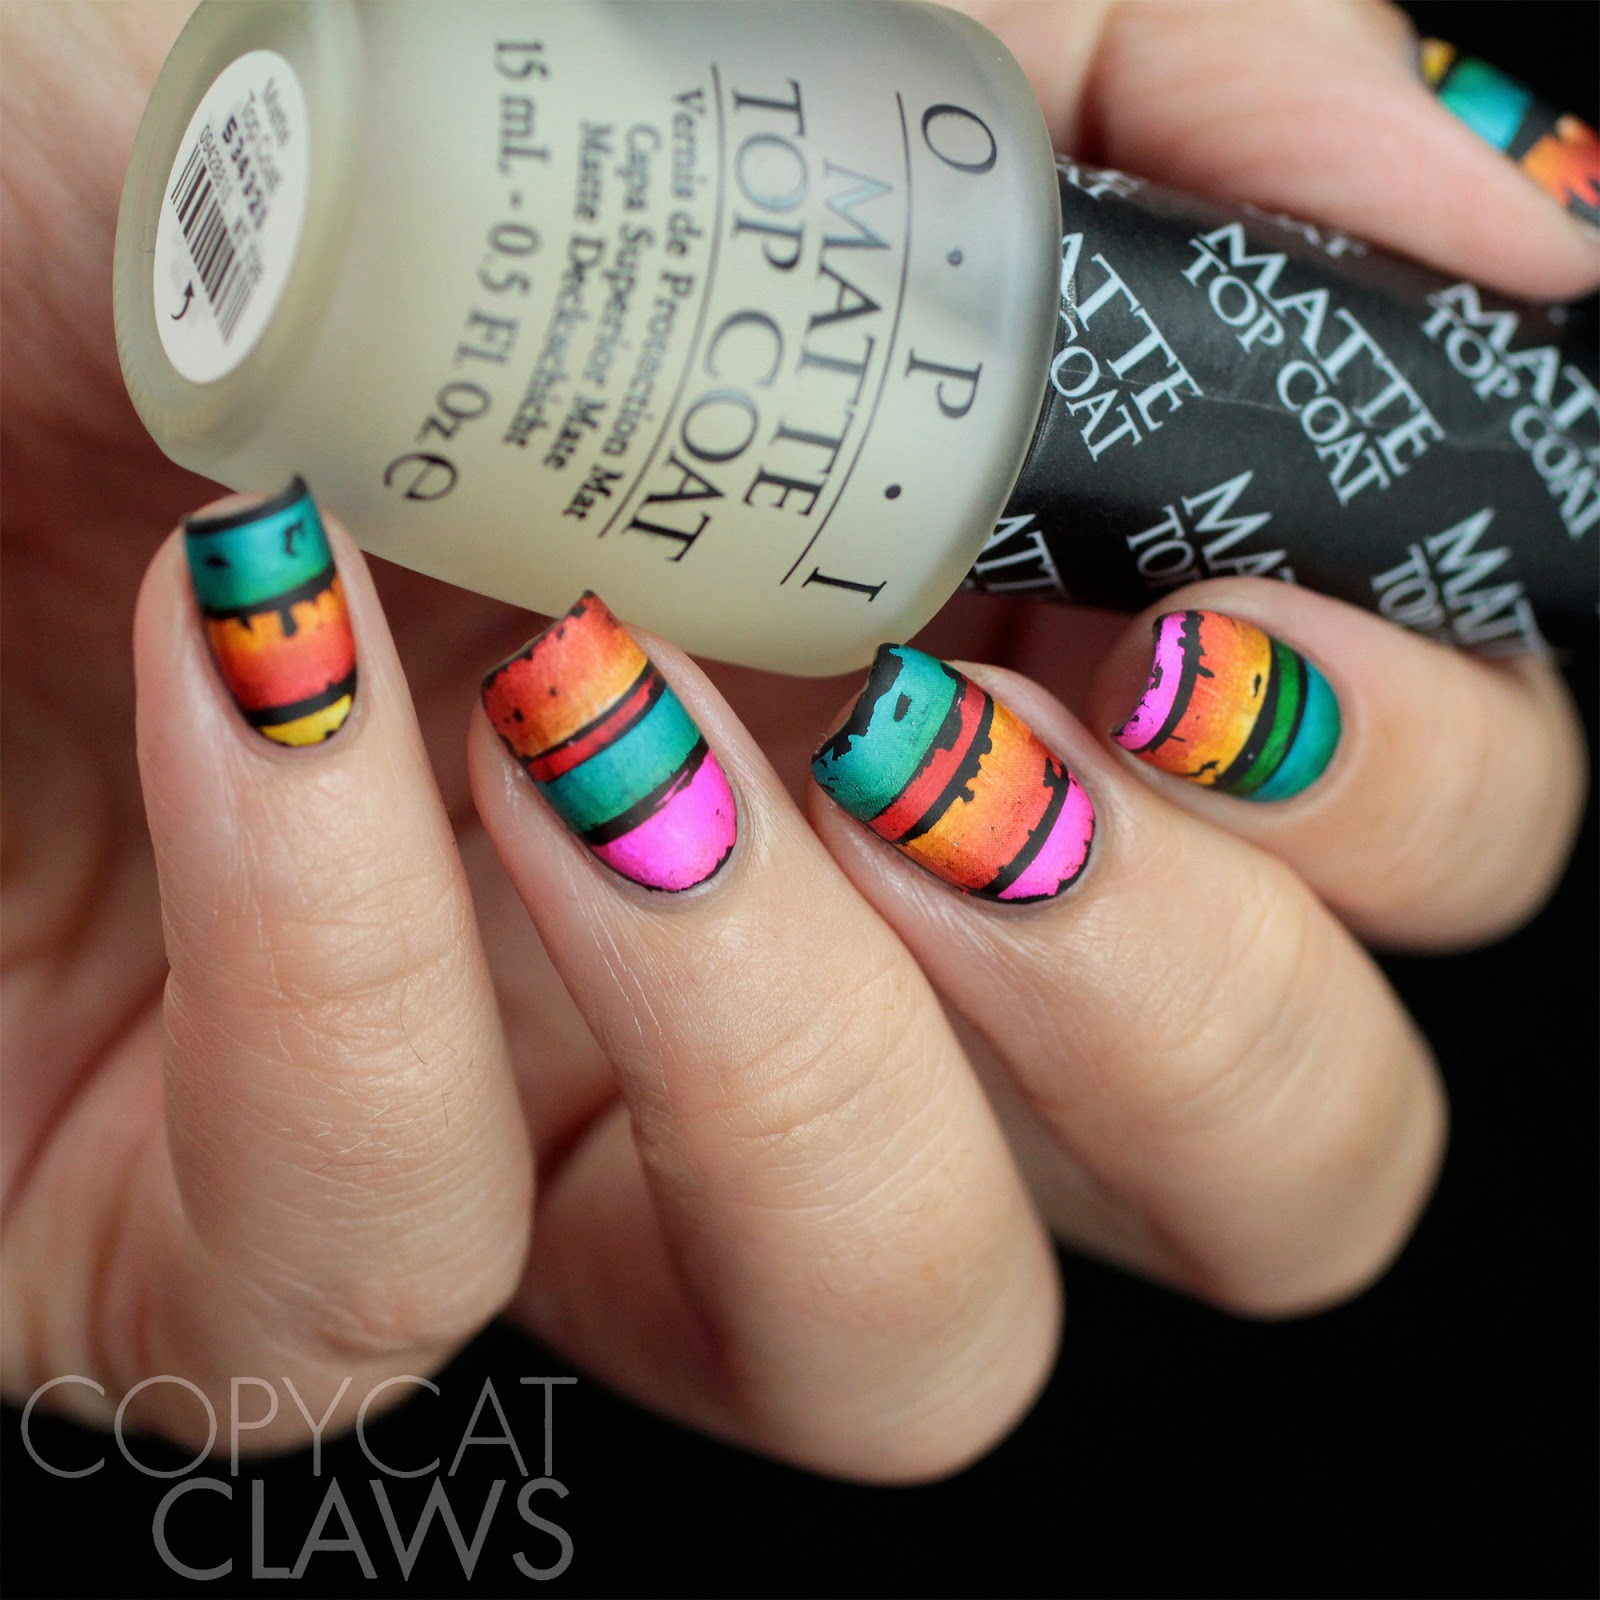 Copycat Claws: Nail Crazies Unite - Stripes